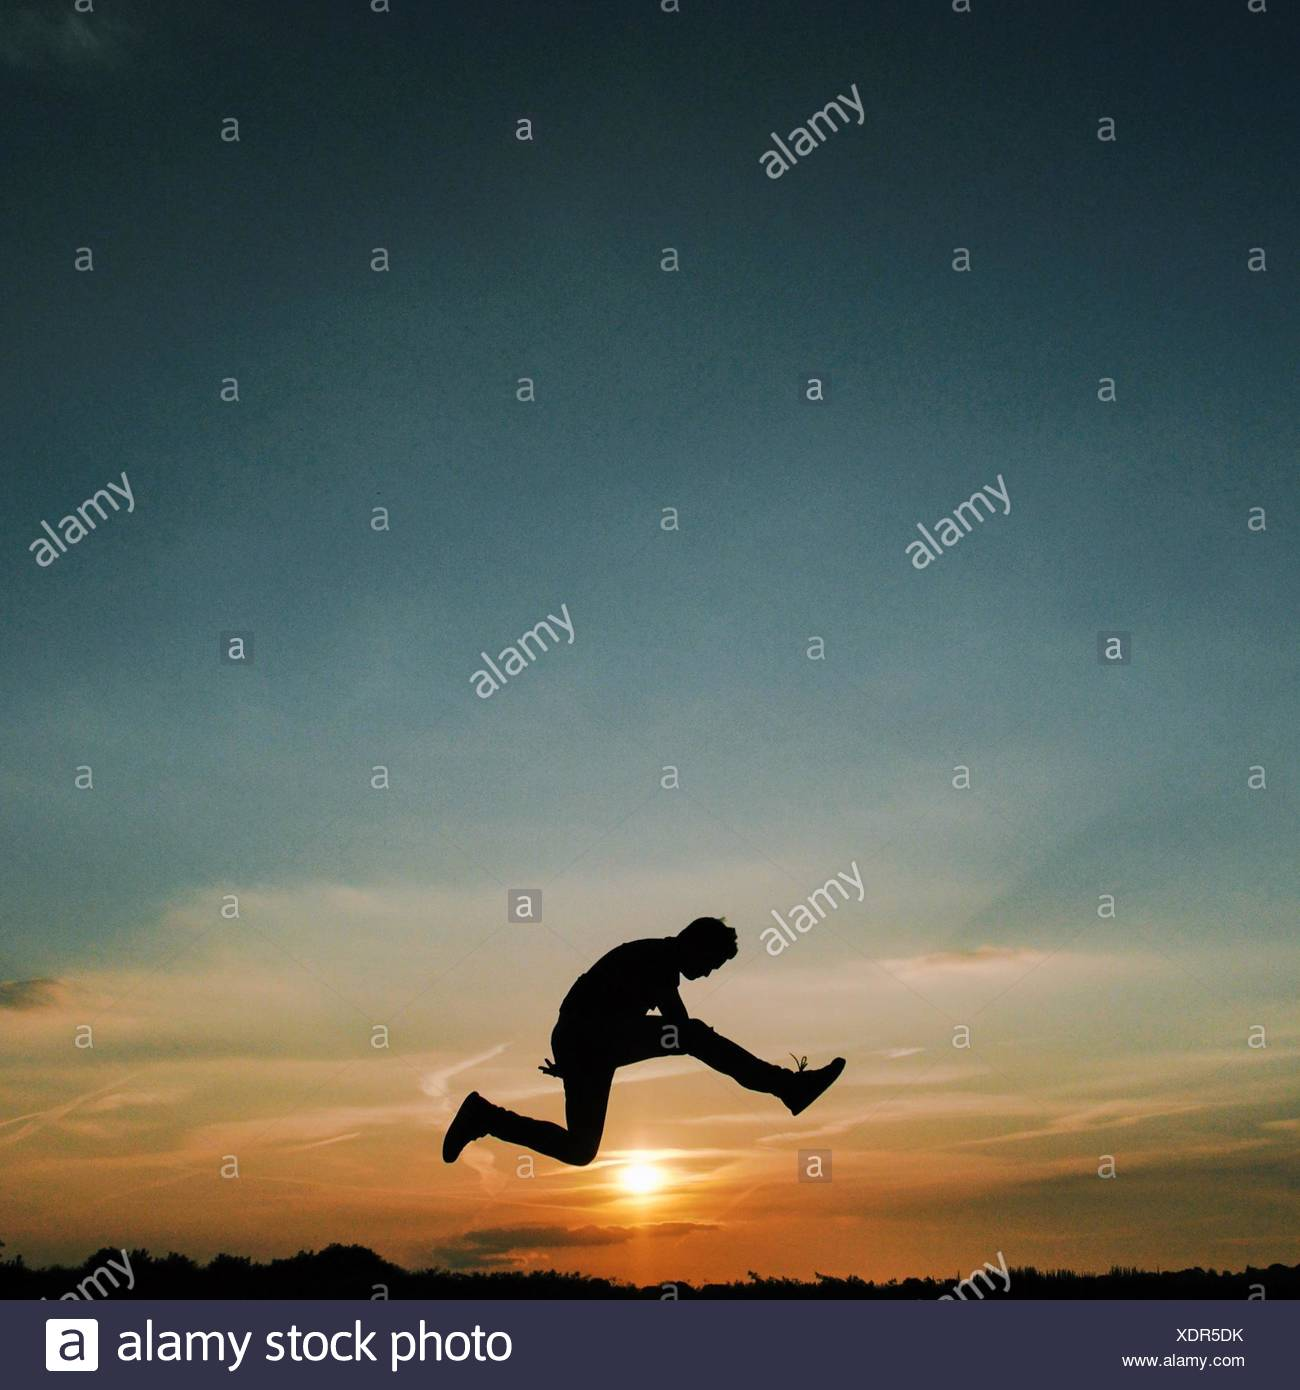 Silhouette of man jumping over sun - Stock Image